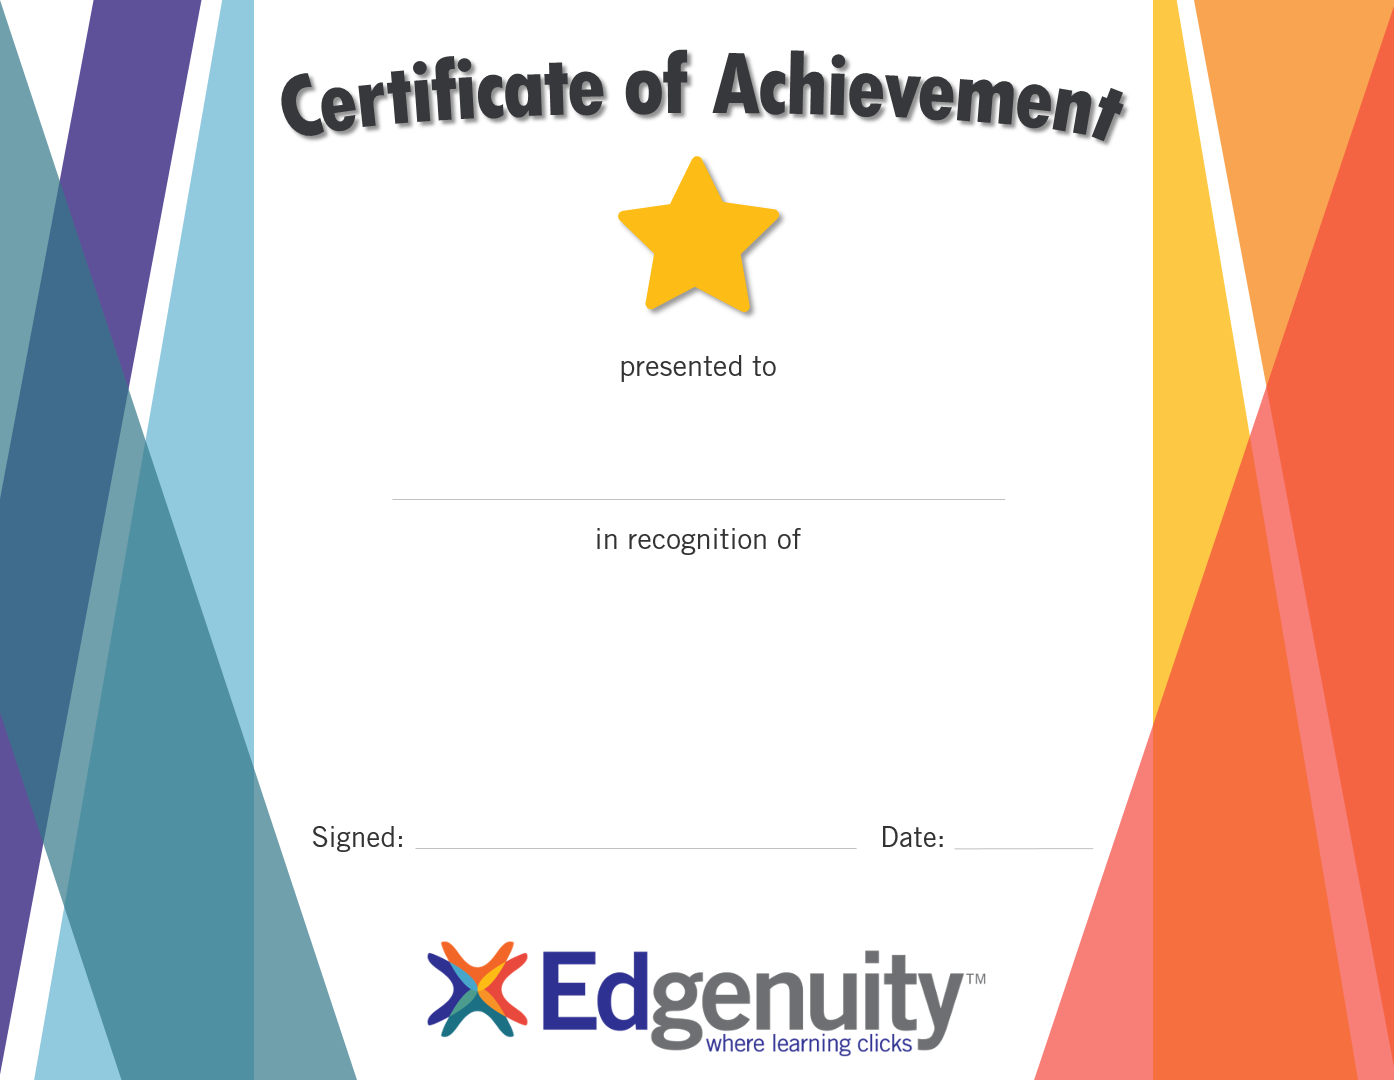 Certificate_of_Achievement_v2.png